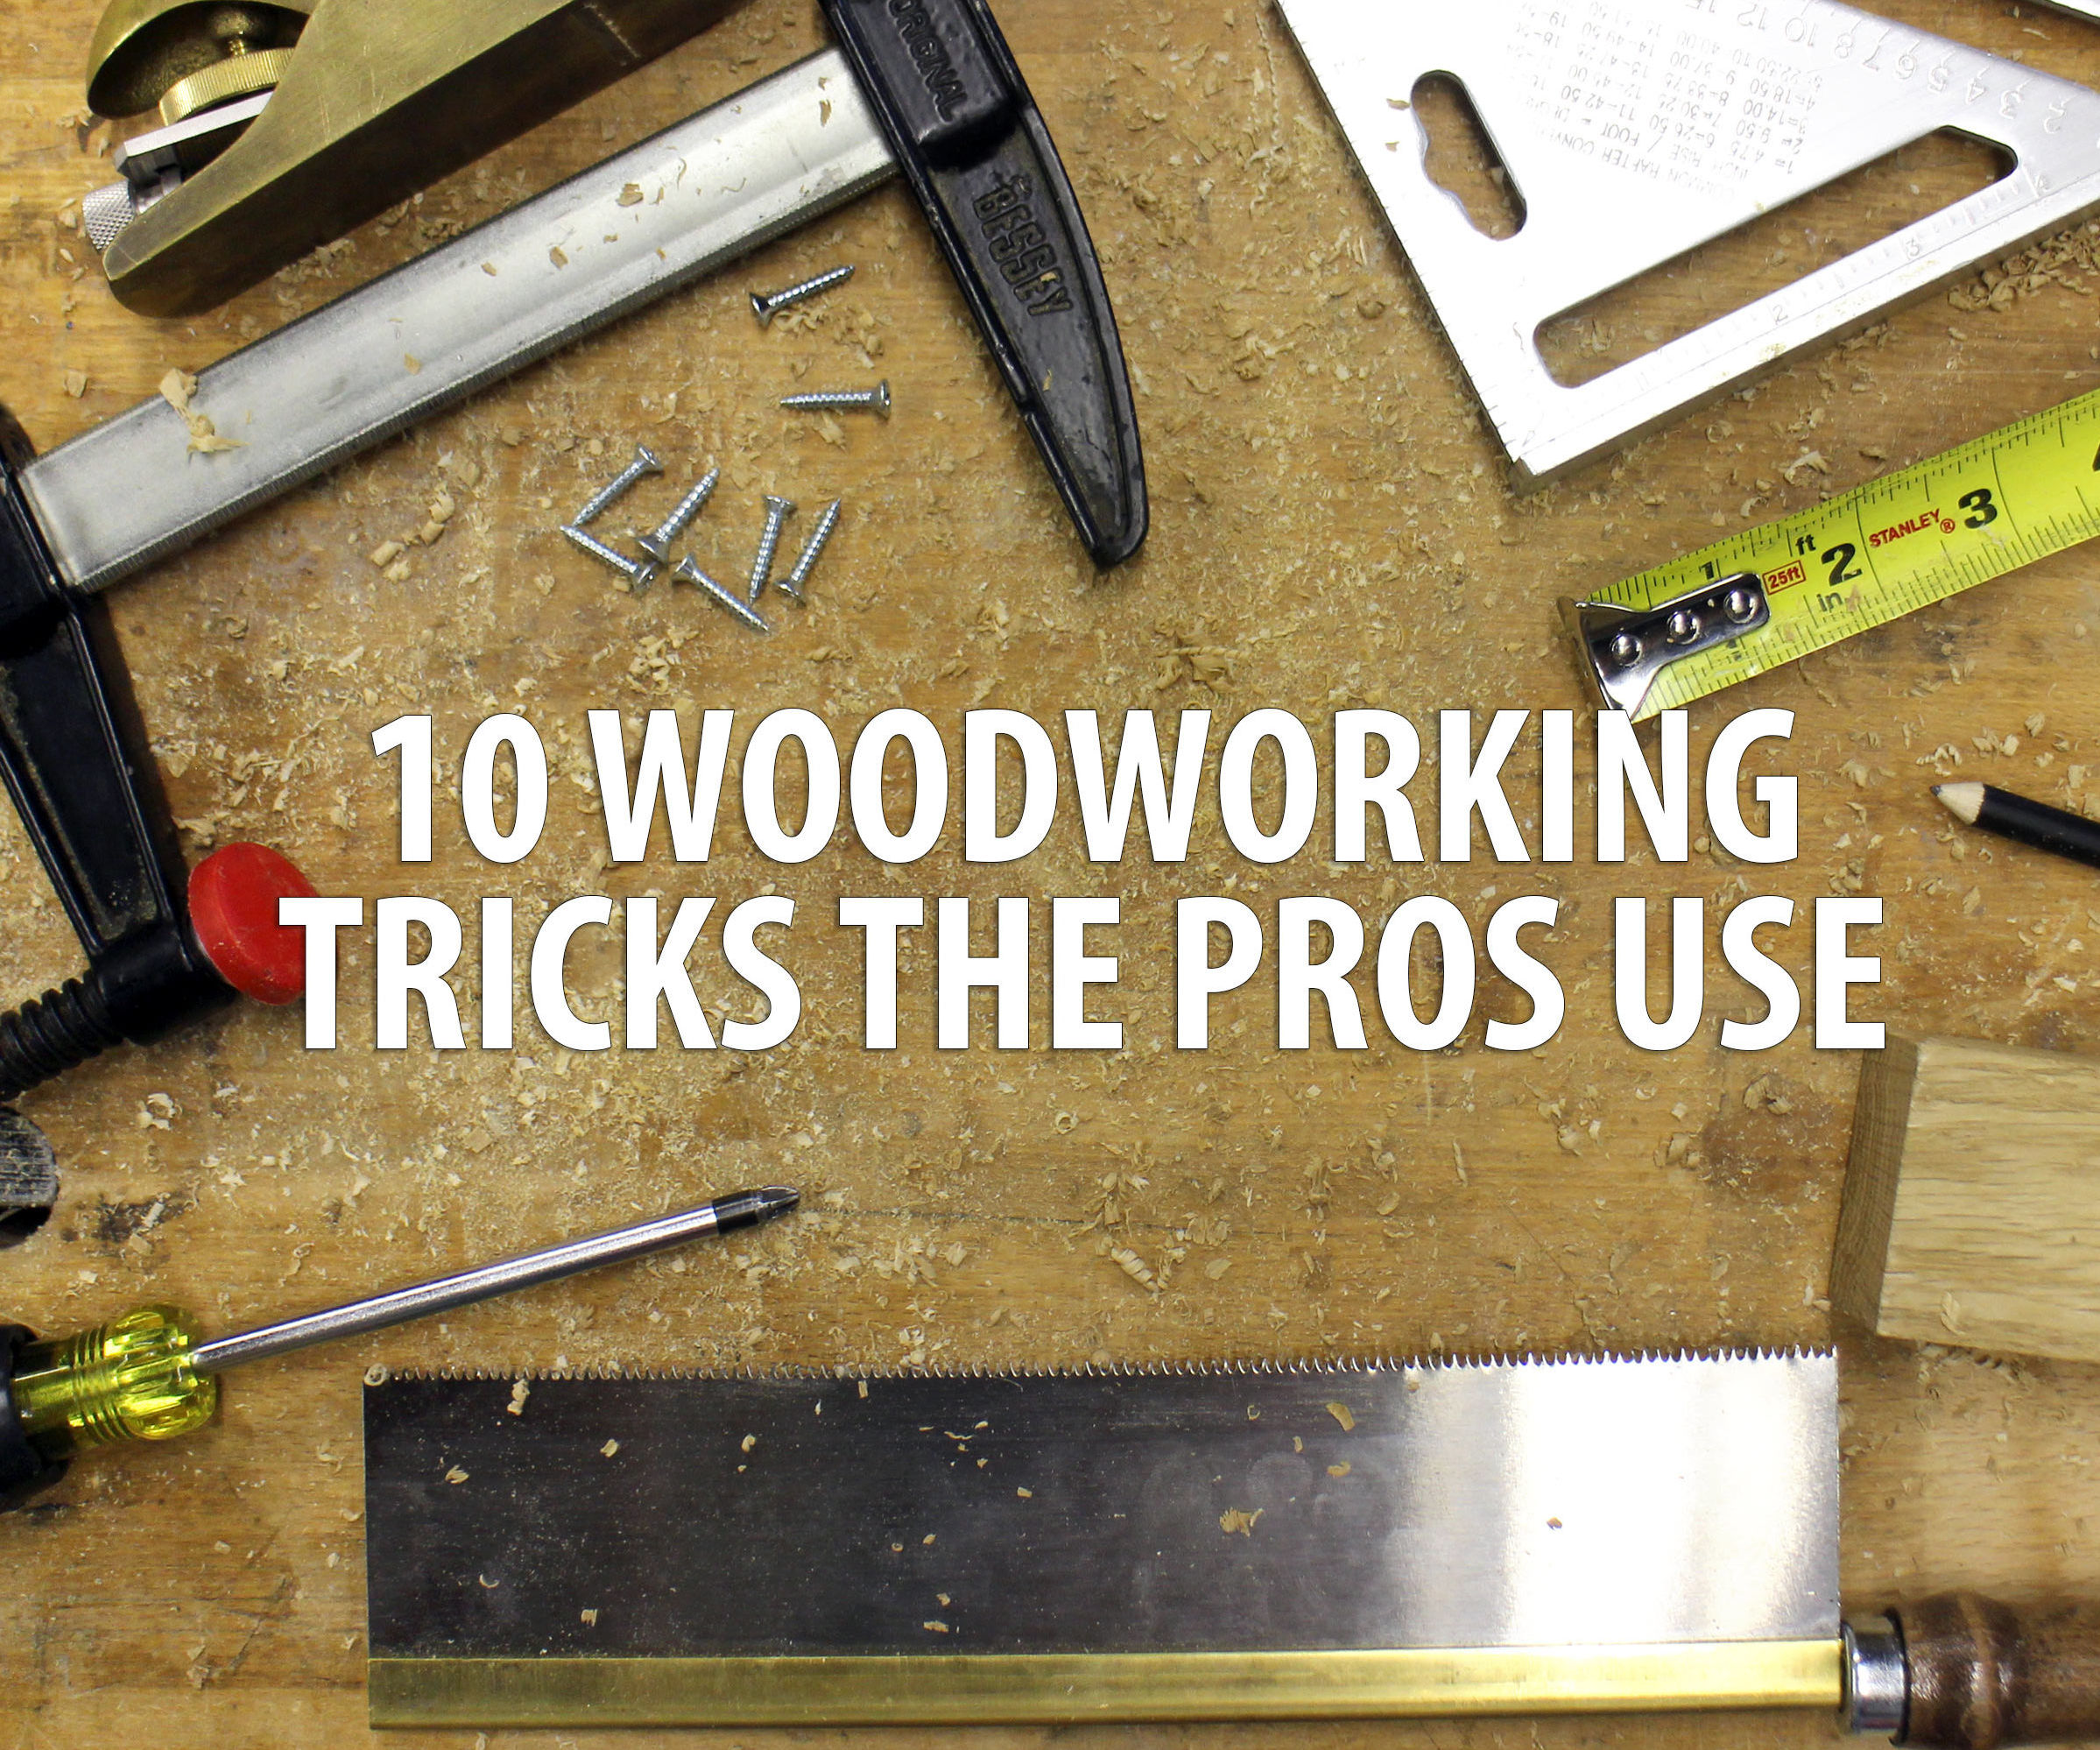 10 woodworking tricks the pros use: 10 steps (with pictures)